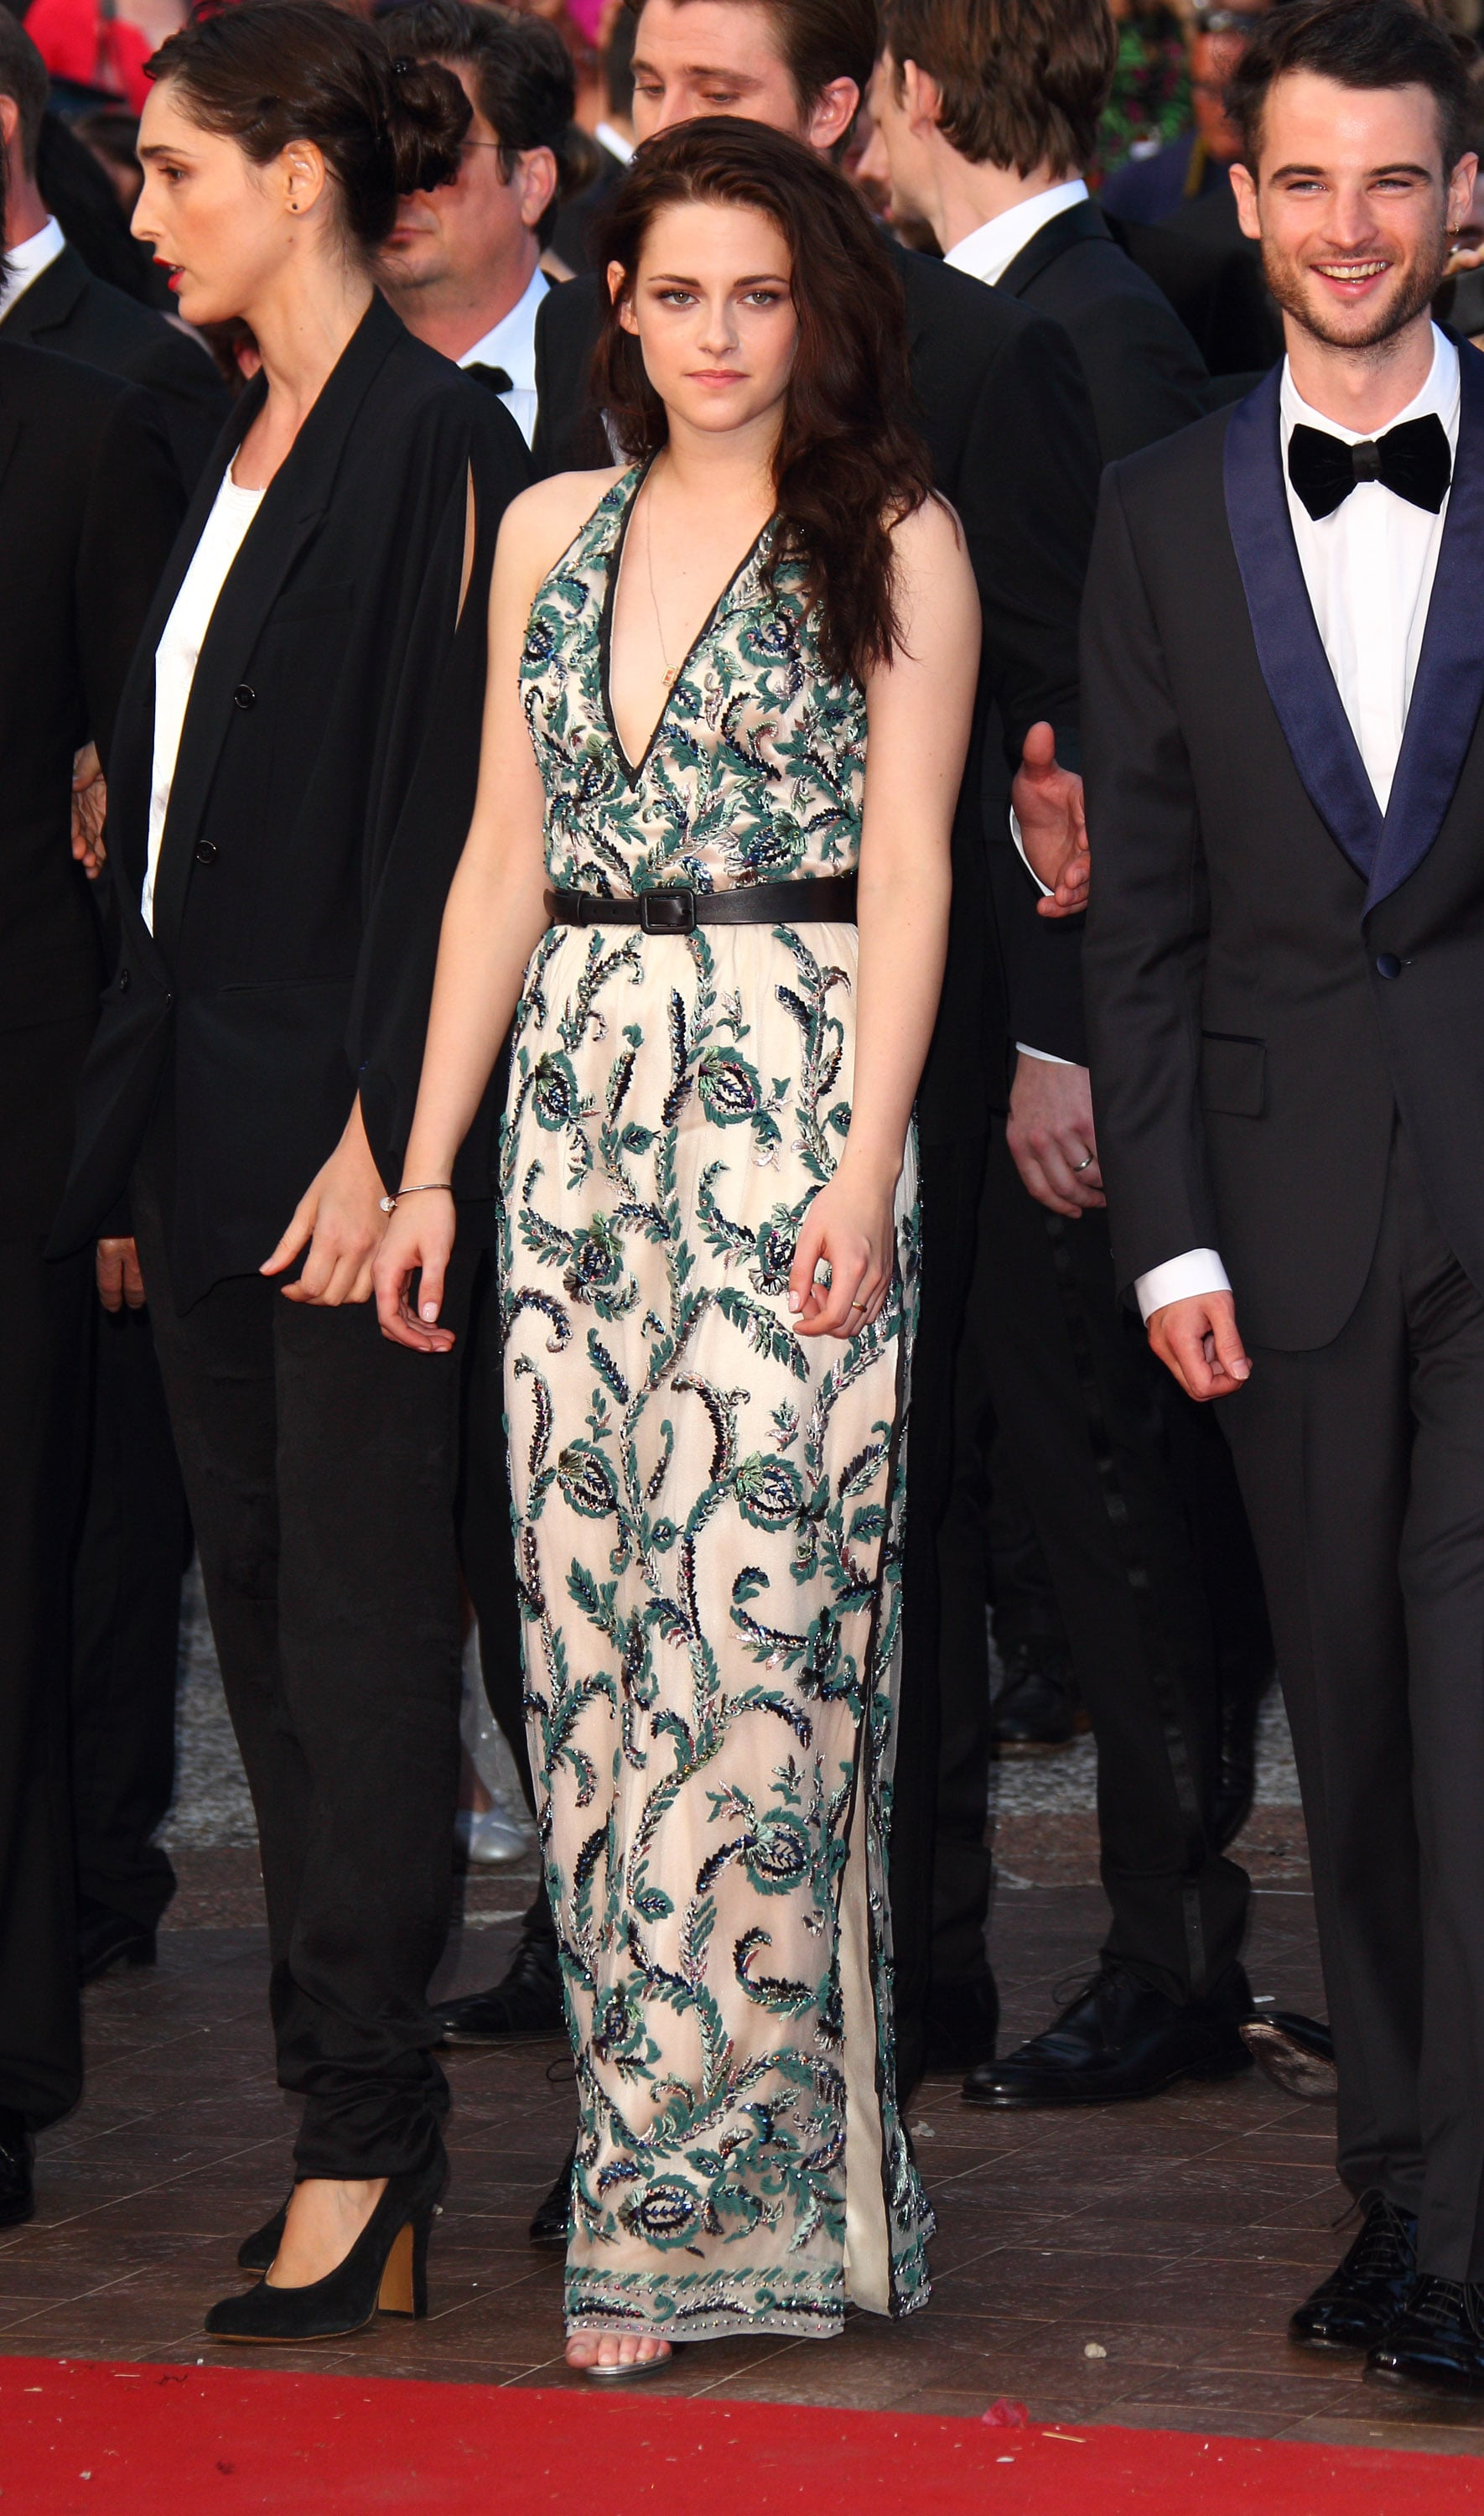 Stewart attended the 2012 Cannes Film Festival premiere of On the Road in a printed Balenciaga gown, featuring a sexy thigh-high side slit, and perfectly tousled waves.